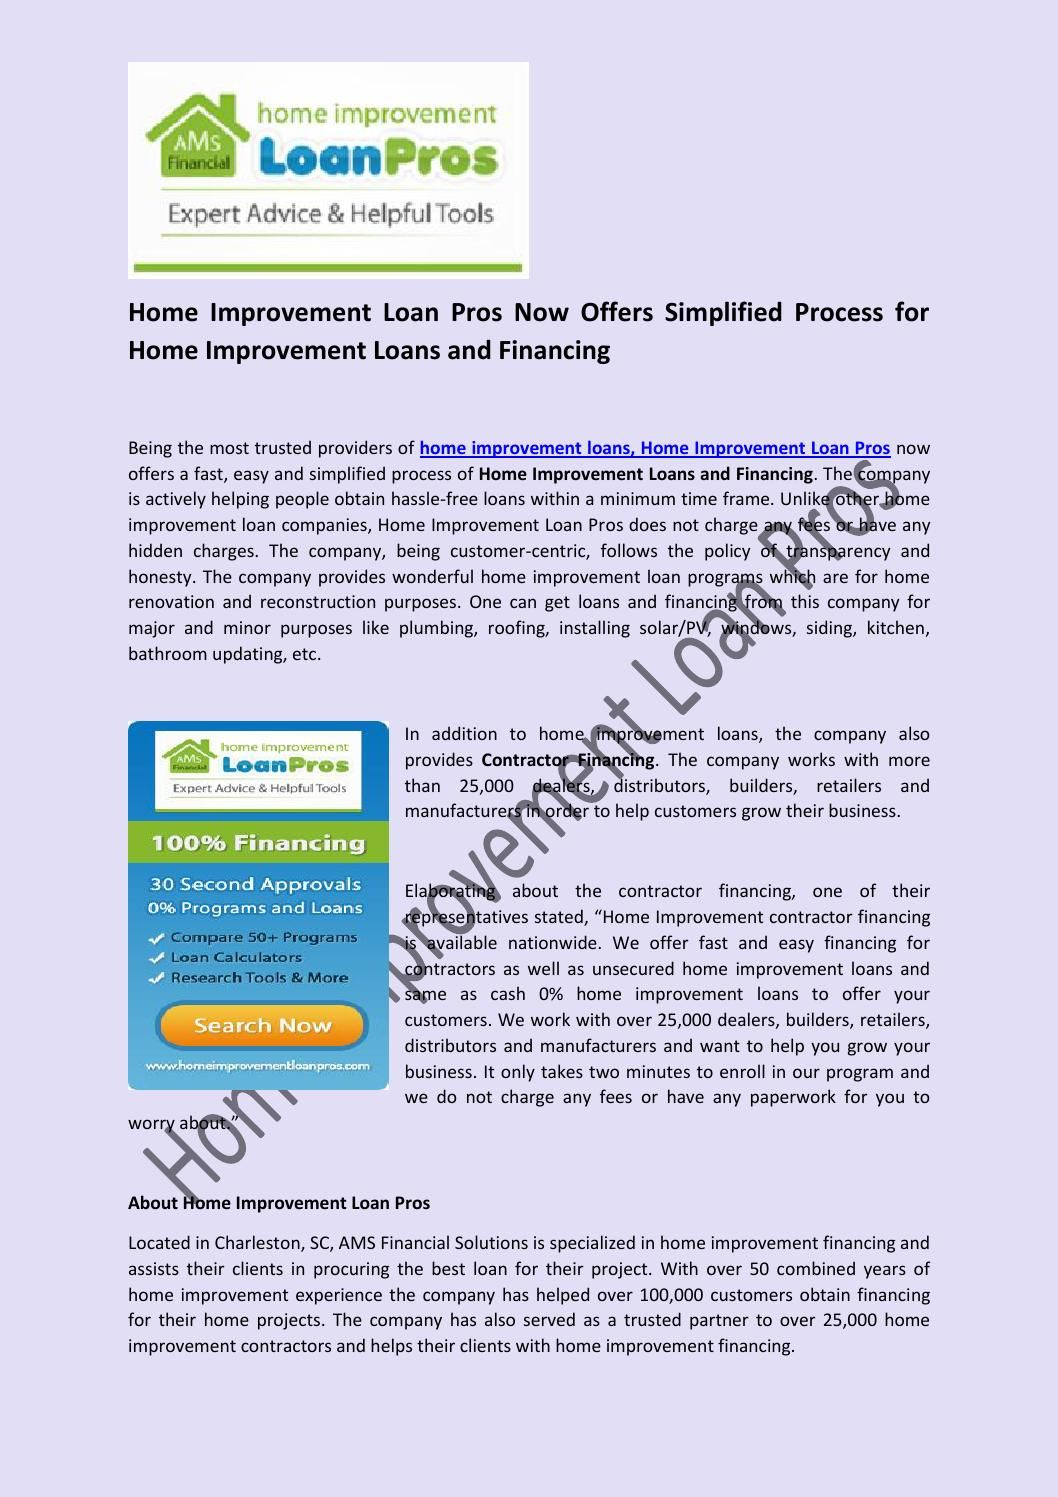 Home Improvement Loan Pros Now Offers Simplified Process For Home Improvement Loans And Financing Press Release For Home Improvement Loan Pro Home Improvem